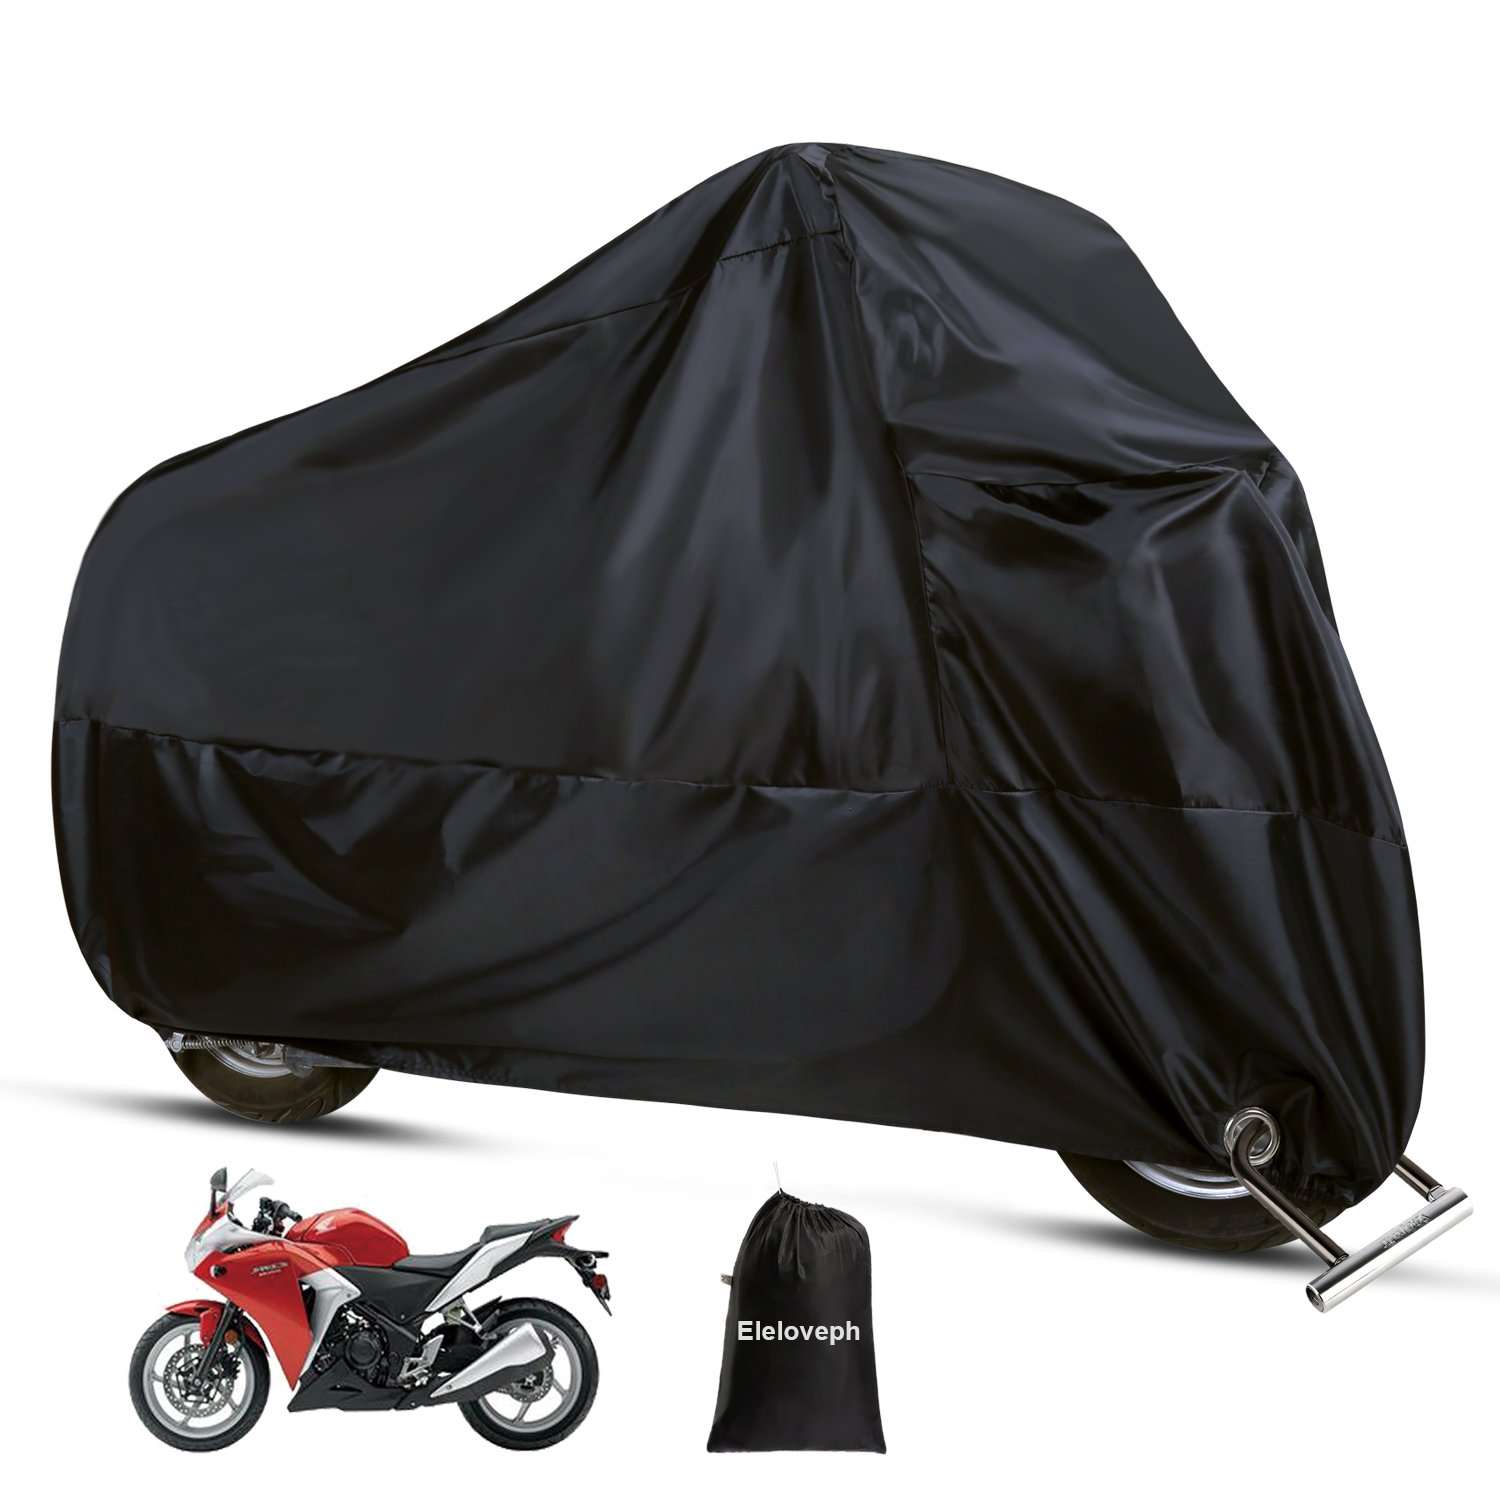 Motorcycle Cover - All Season Waterproof Outdoor Protection - Precision Fit for Tour Bikes, Choppers and Cruisers - Eleloveph Protect Against Dust,Rain,Snow and Sun (XXL-96'x41'x49', Black) Snow and Sun (XXL-96x41x49